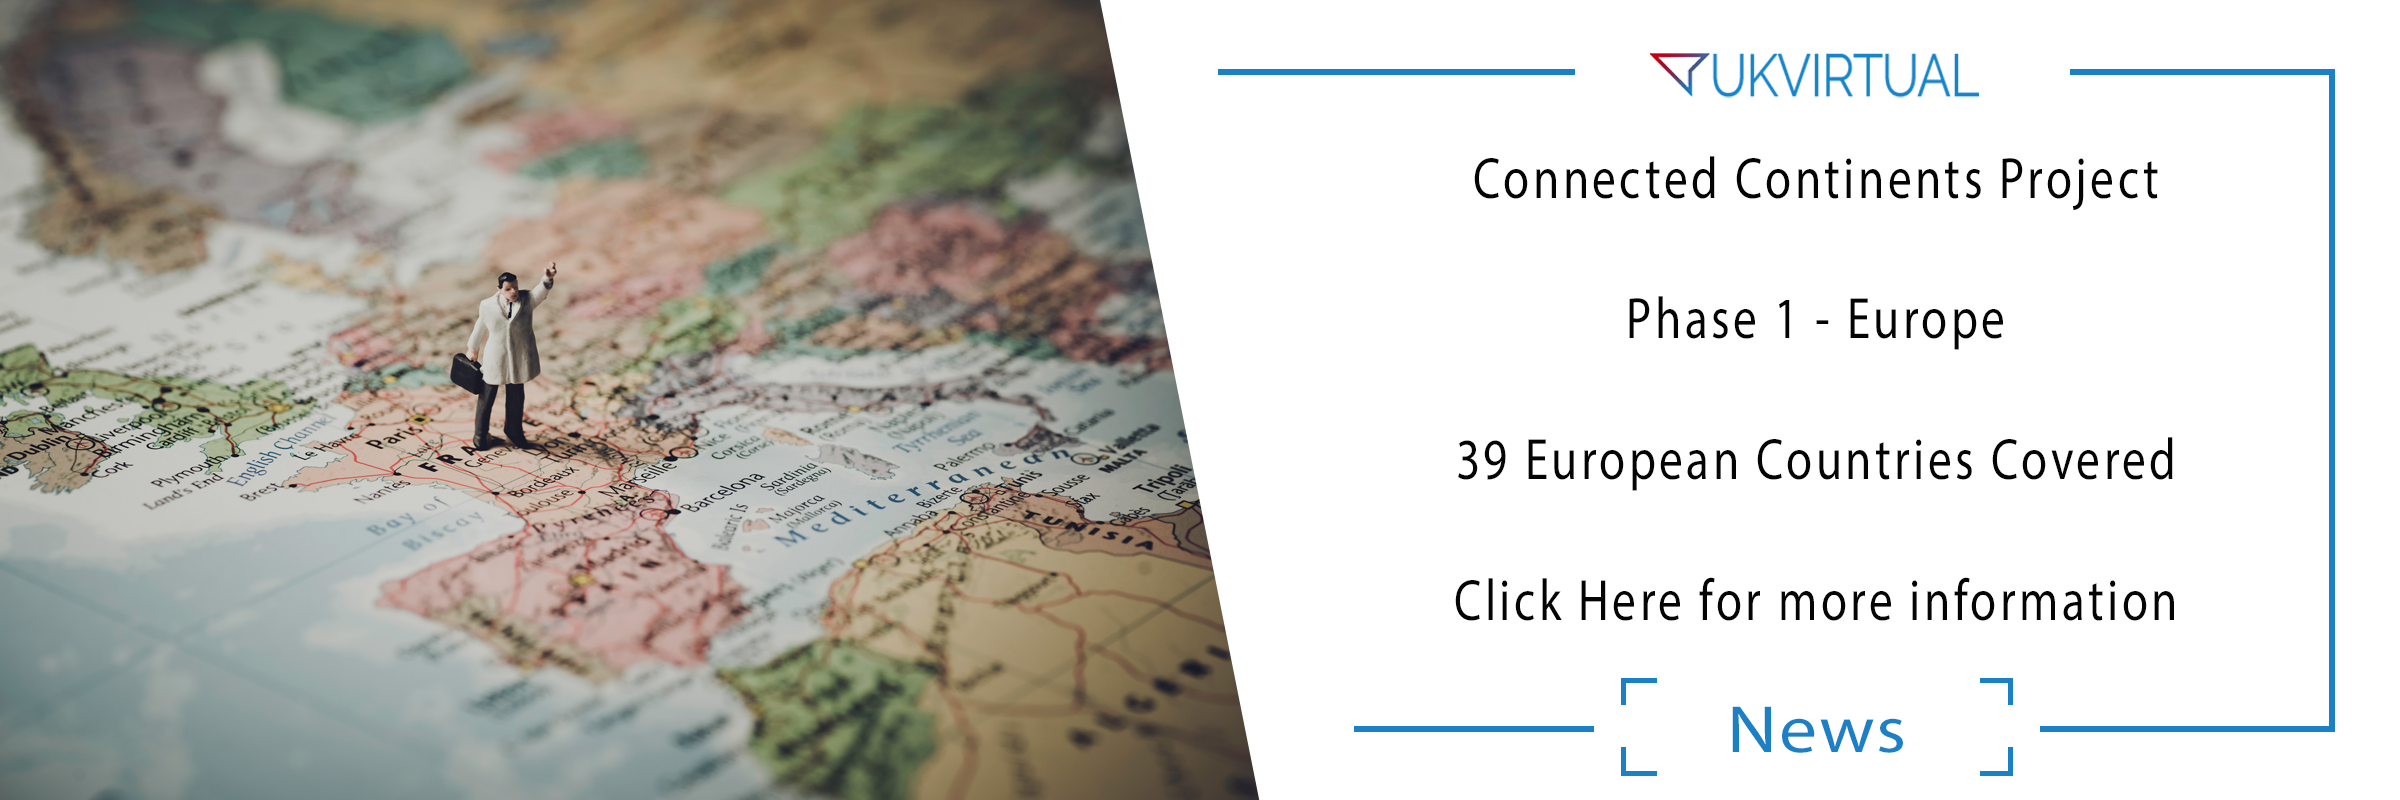 Connected Continents Project – Phase 1 Europe – COMPLETE!